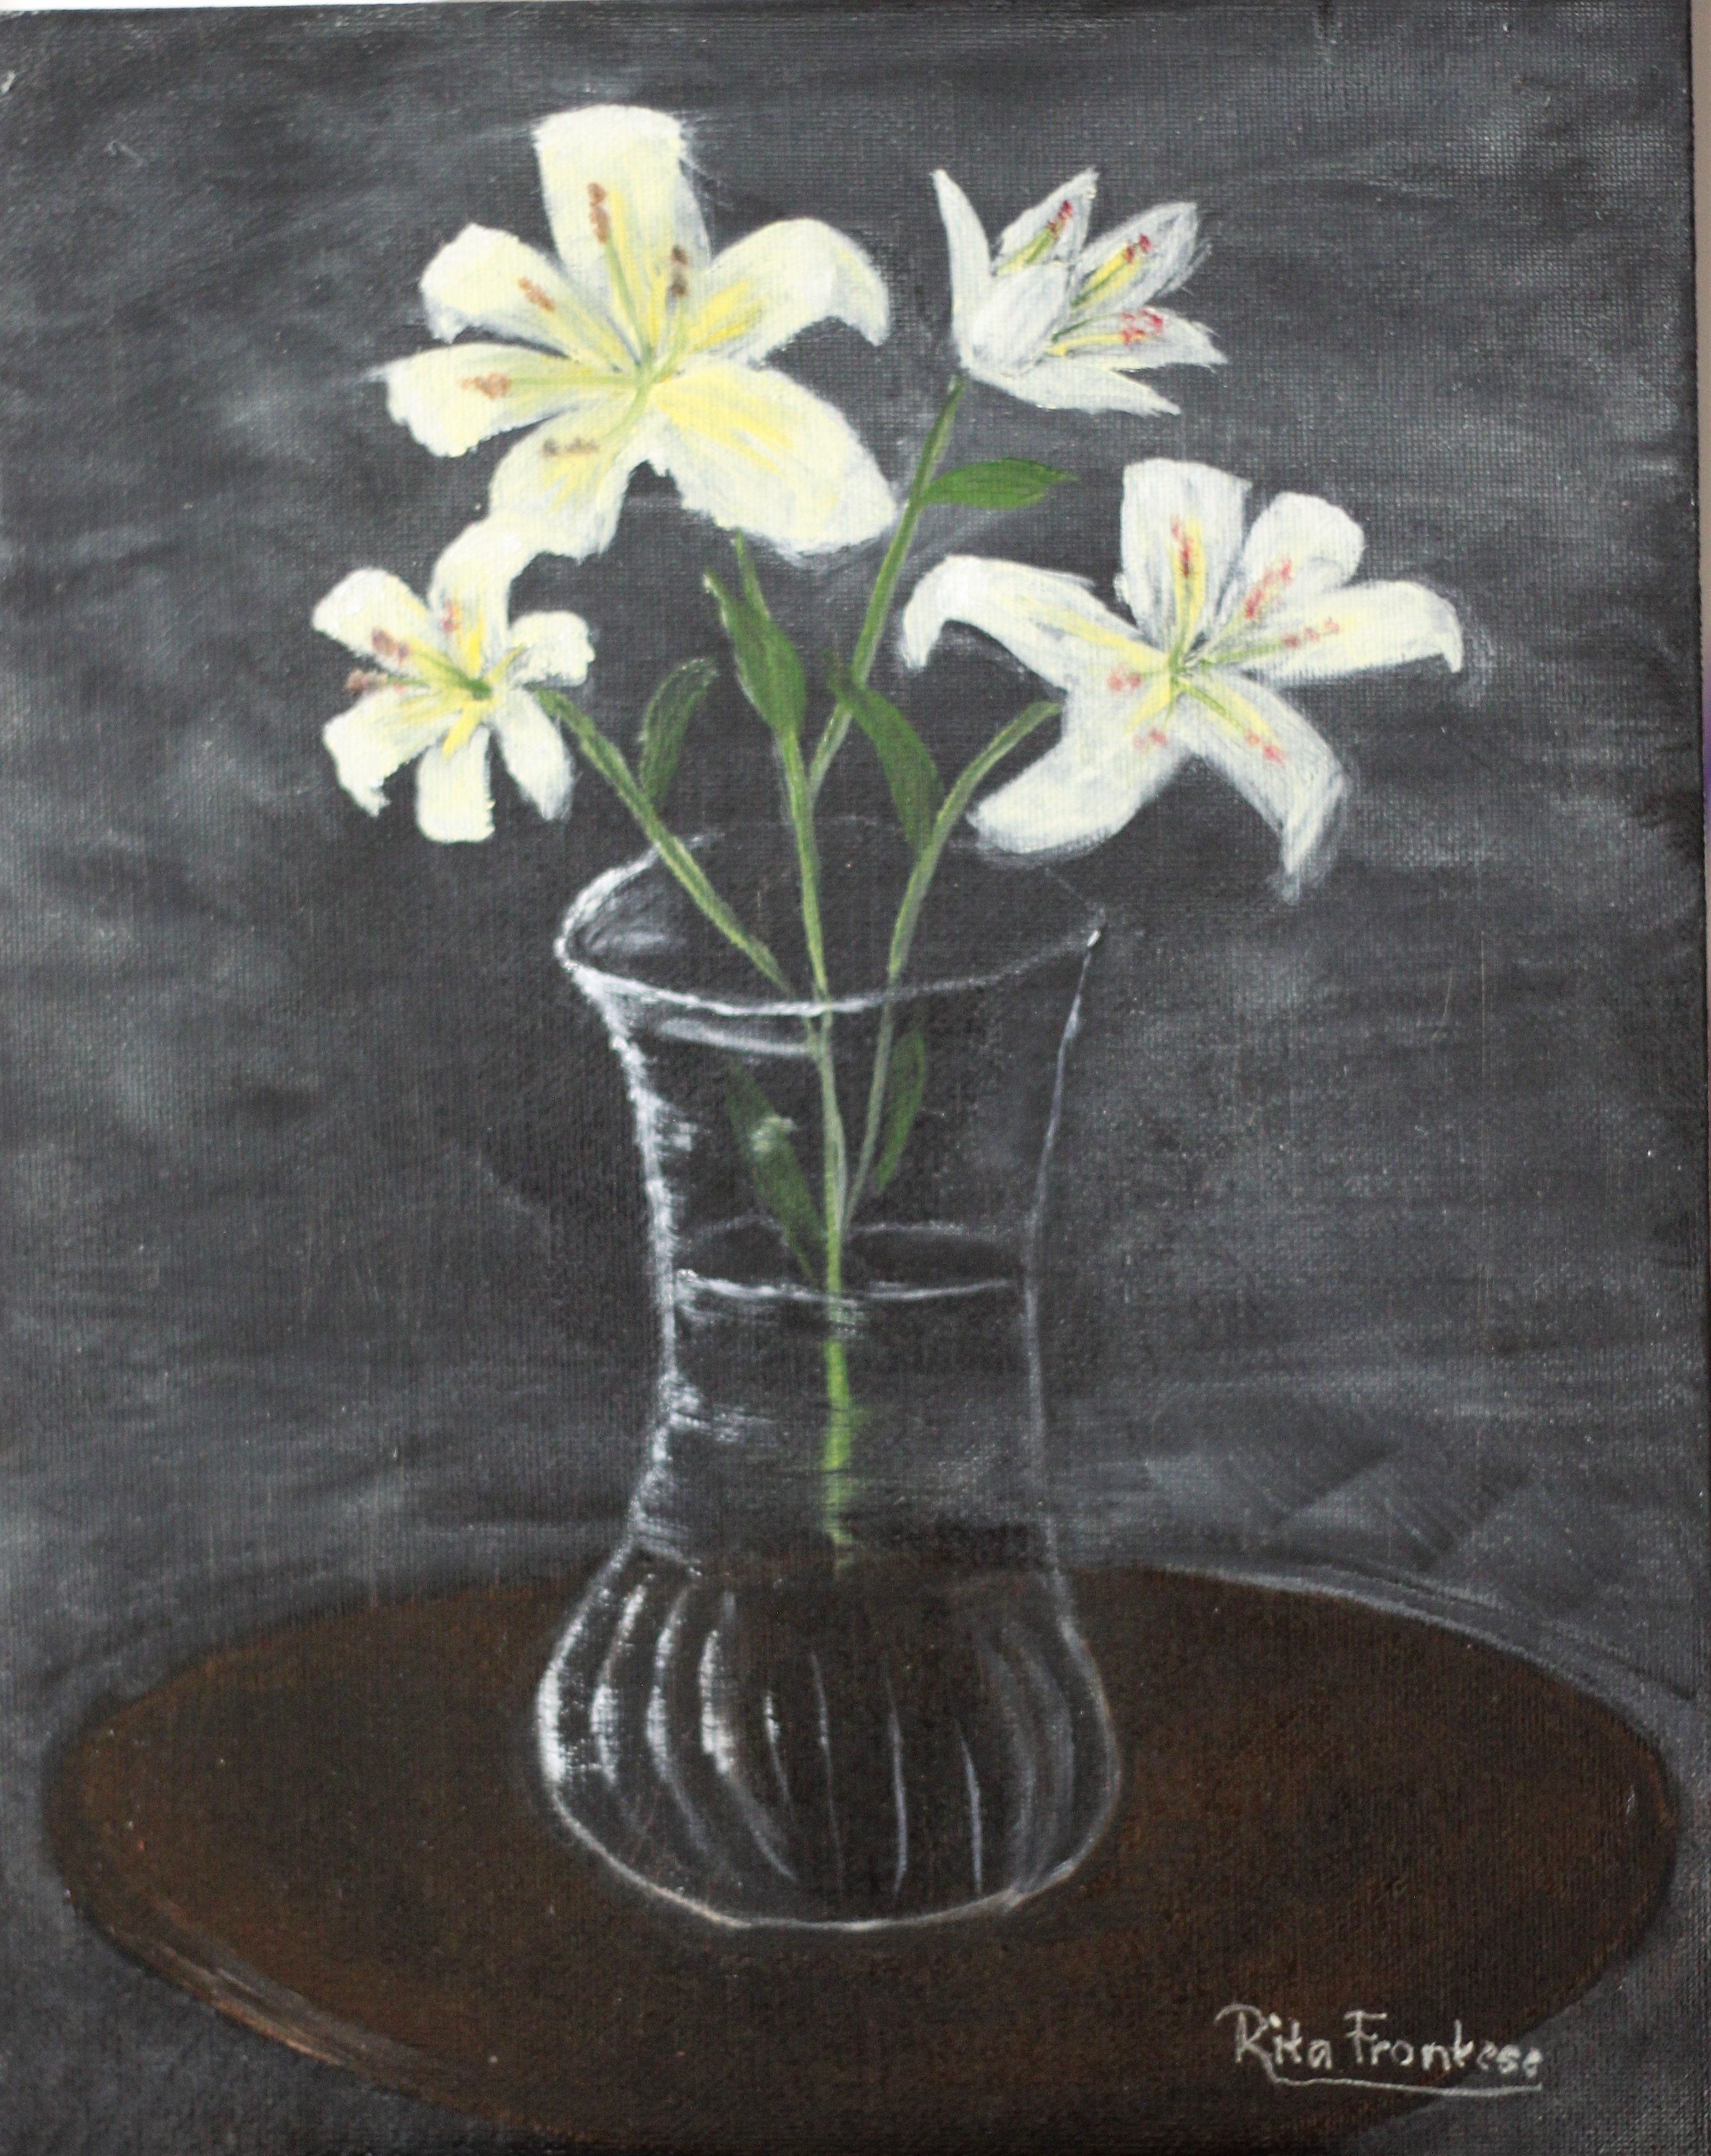 Lilies in the vase